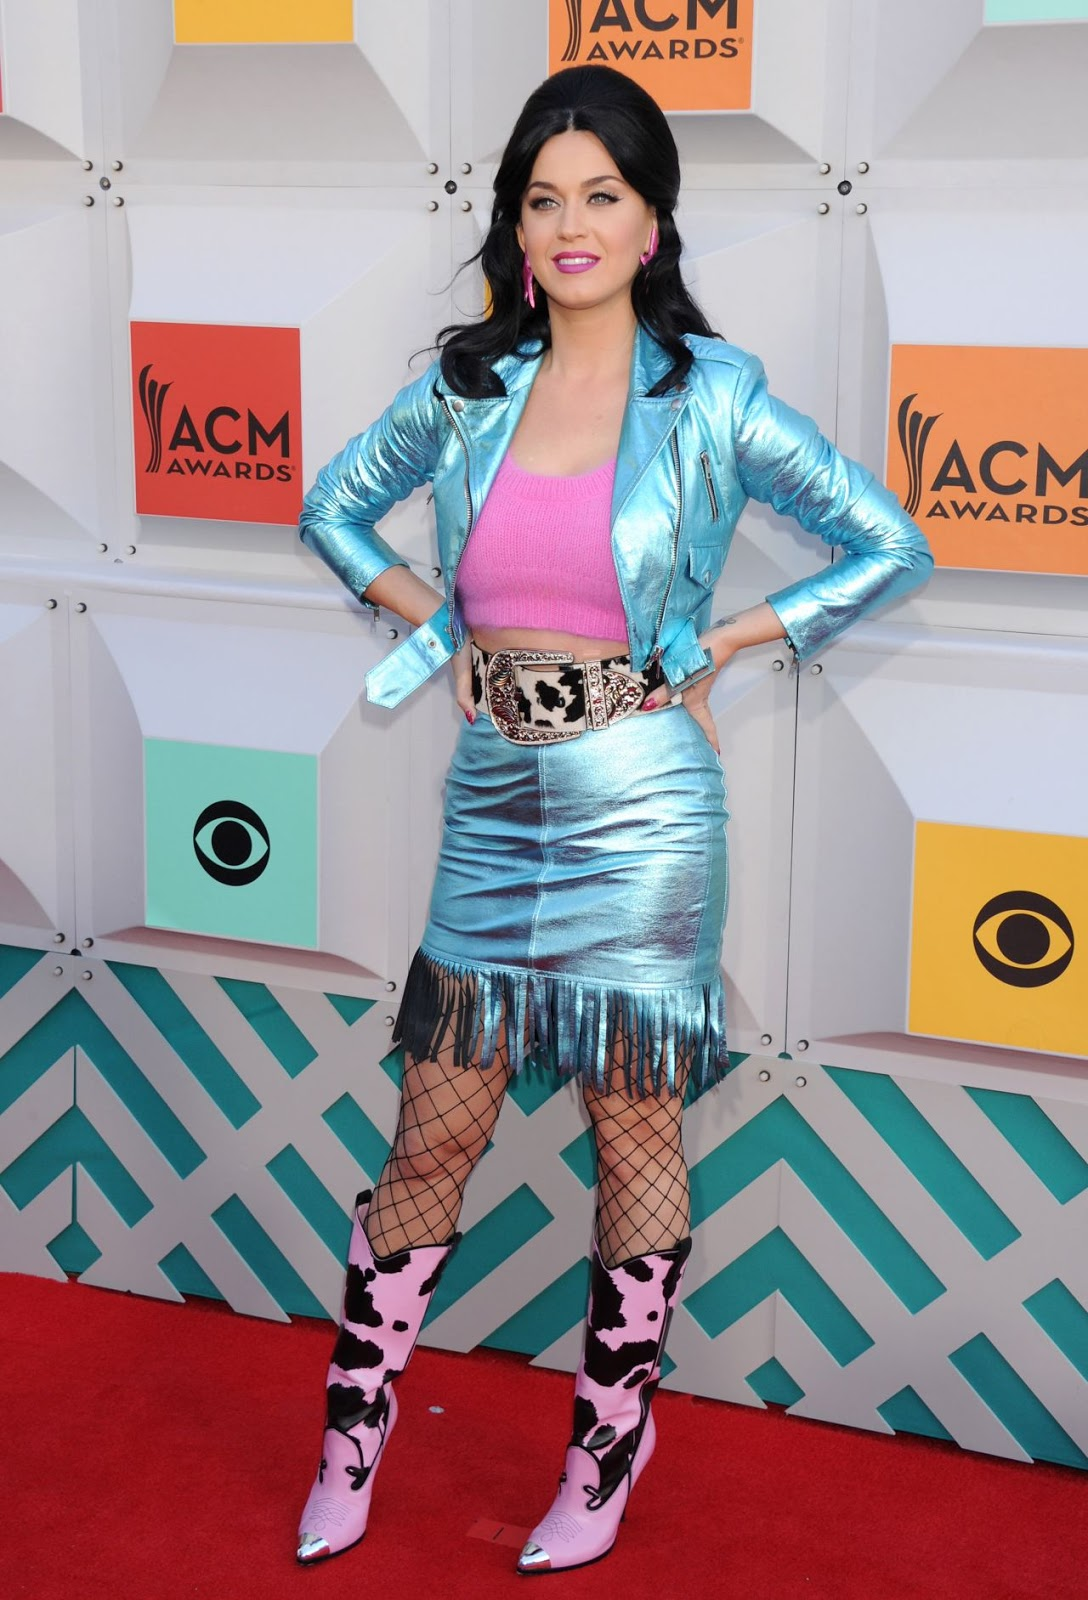 Katy Perry goes country chic for the ACM Awards 2016 in Las Vegas